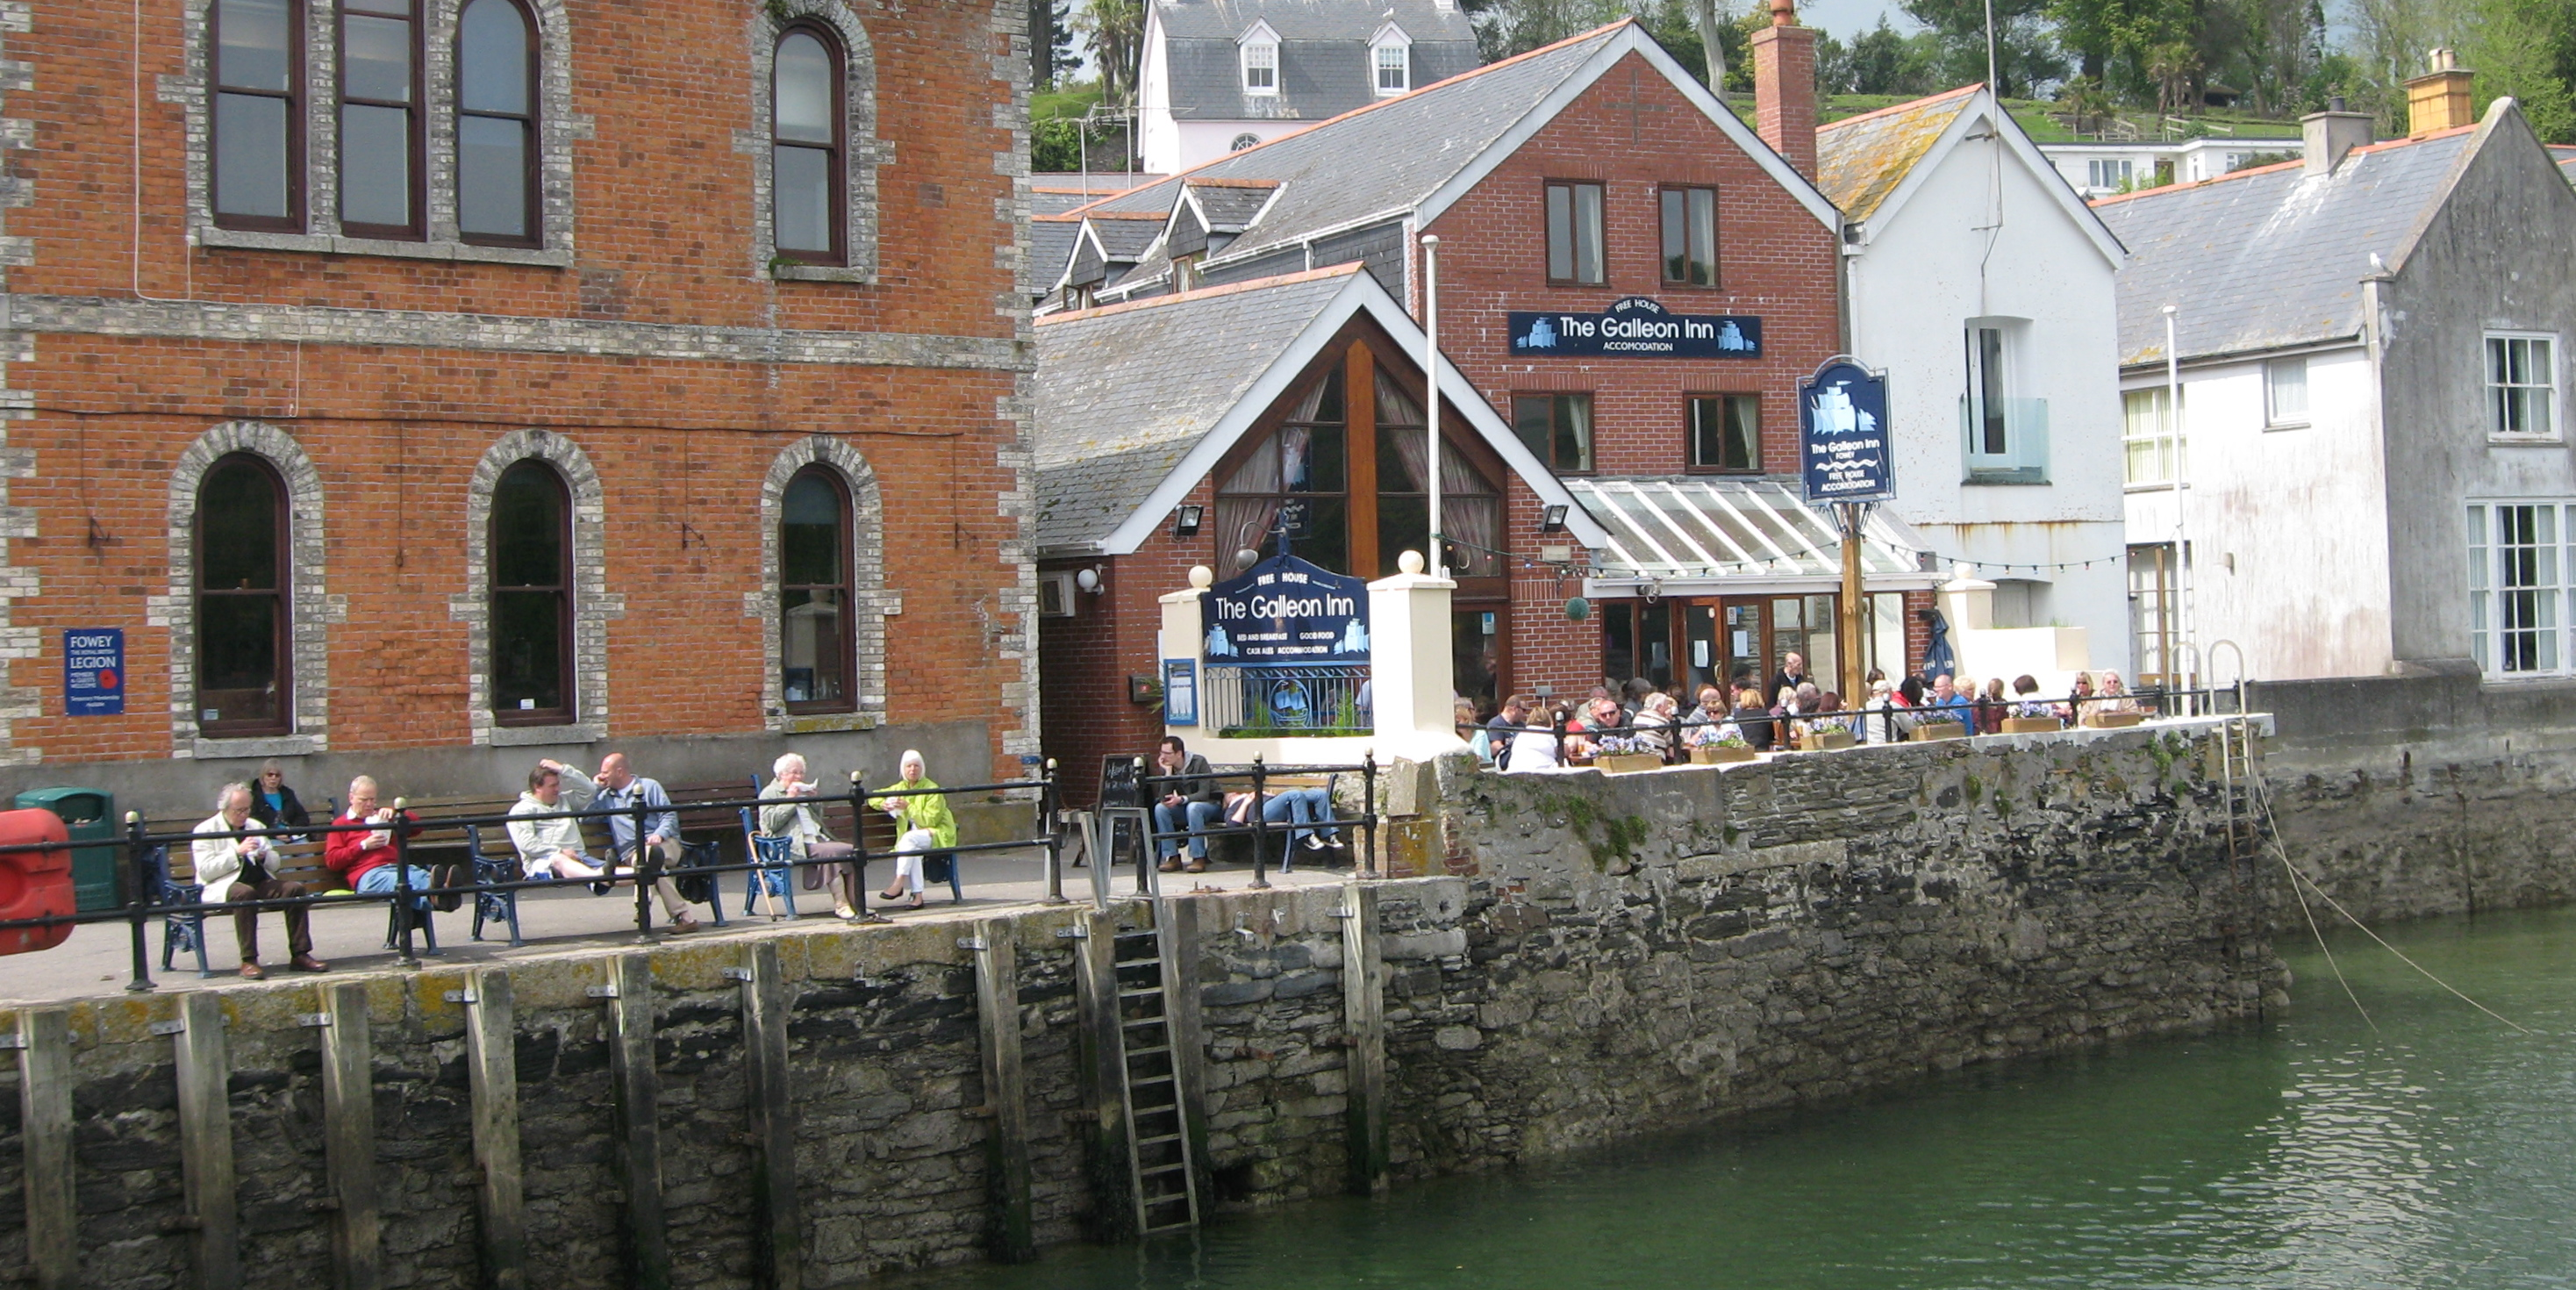 A pub on the water in Fowey, Cornwall with great fish and chips. Photo by me